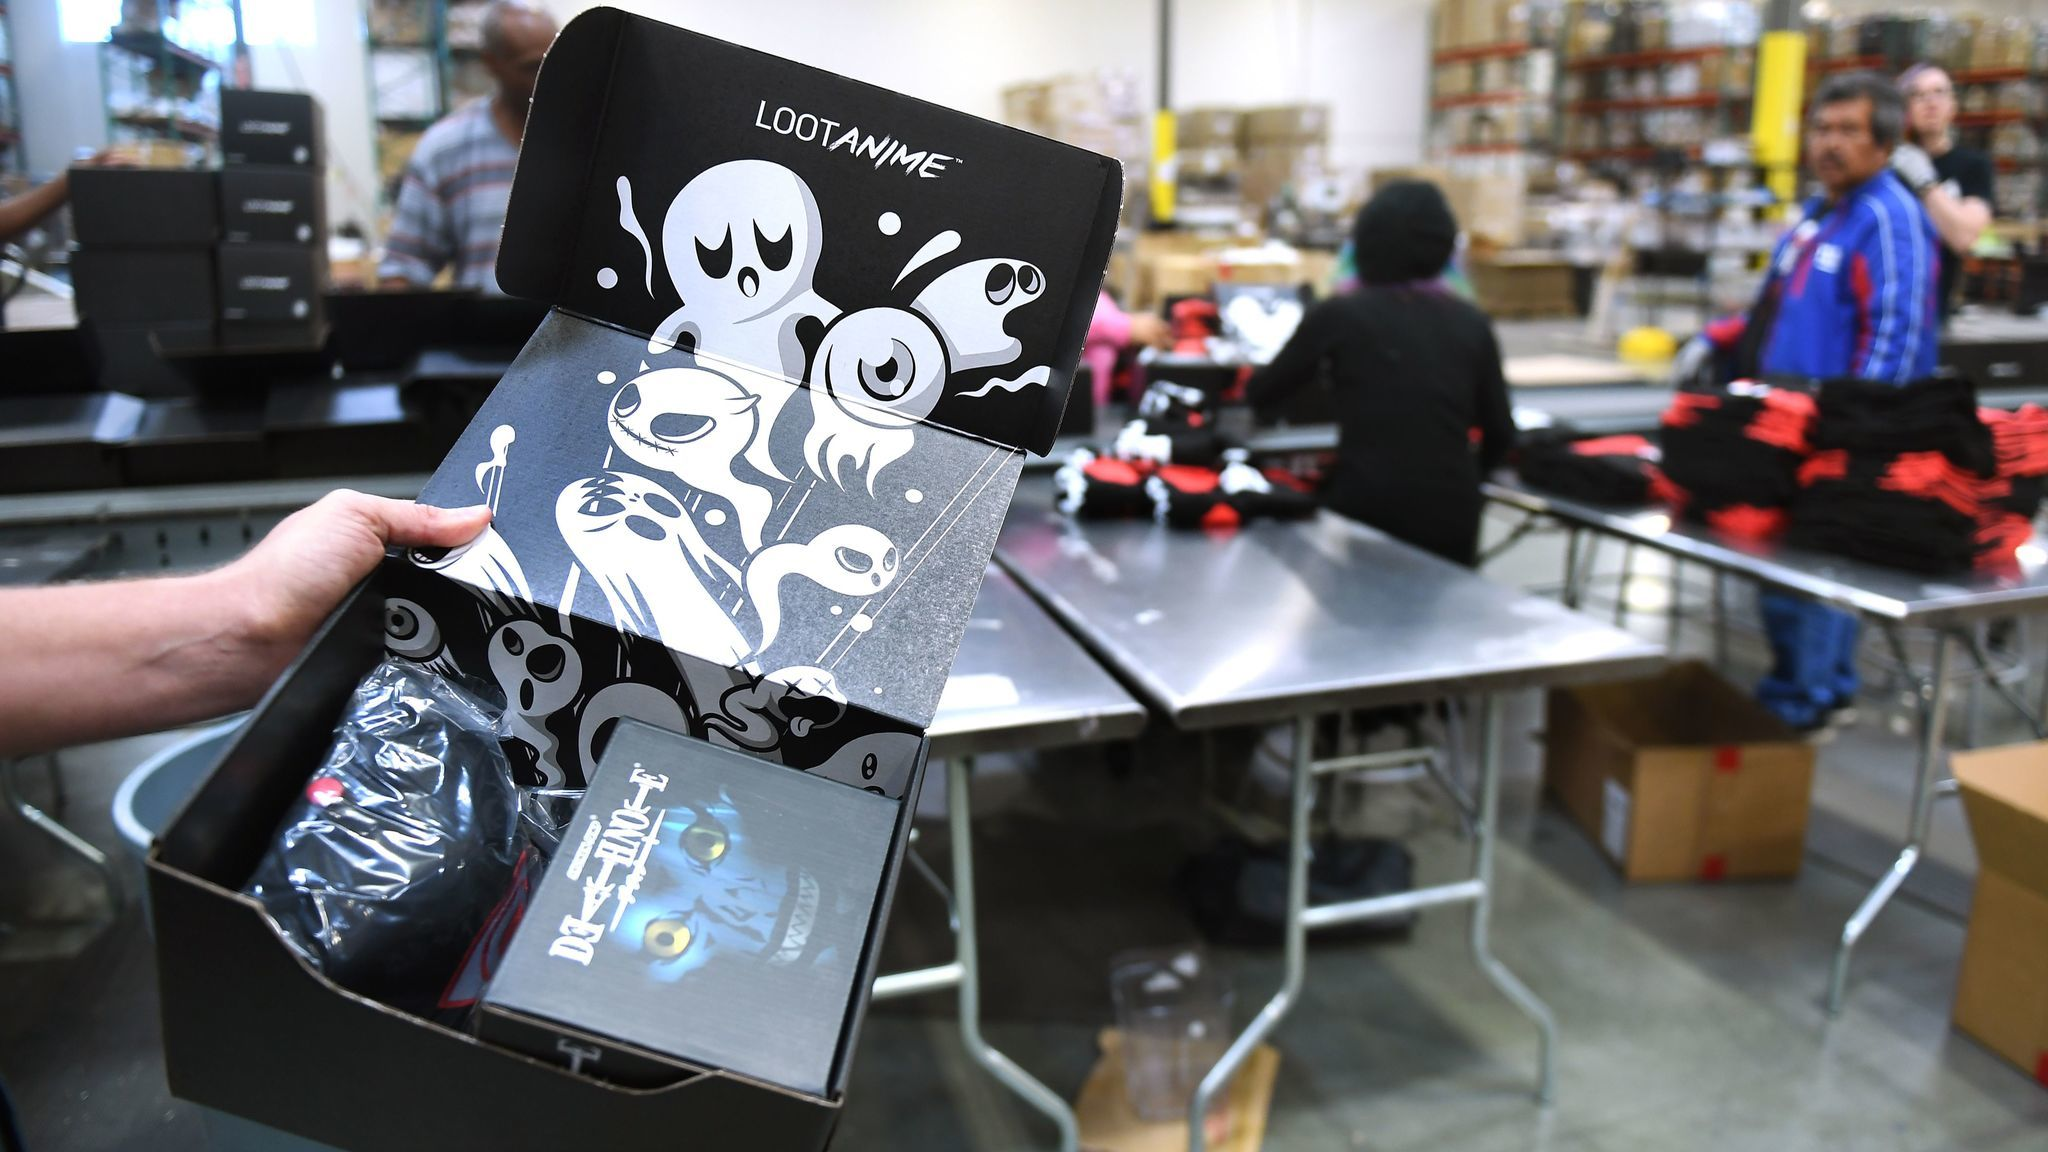 Loot Crate's offerings include a box aimed at fans of anime, or cartoons.